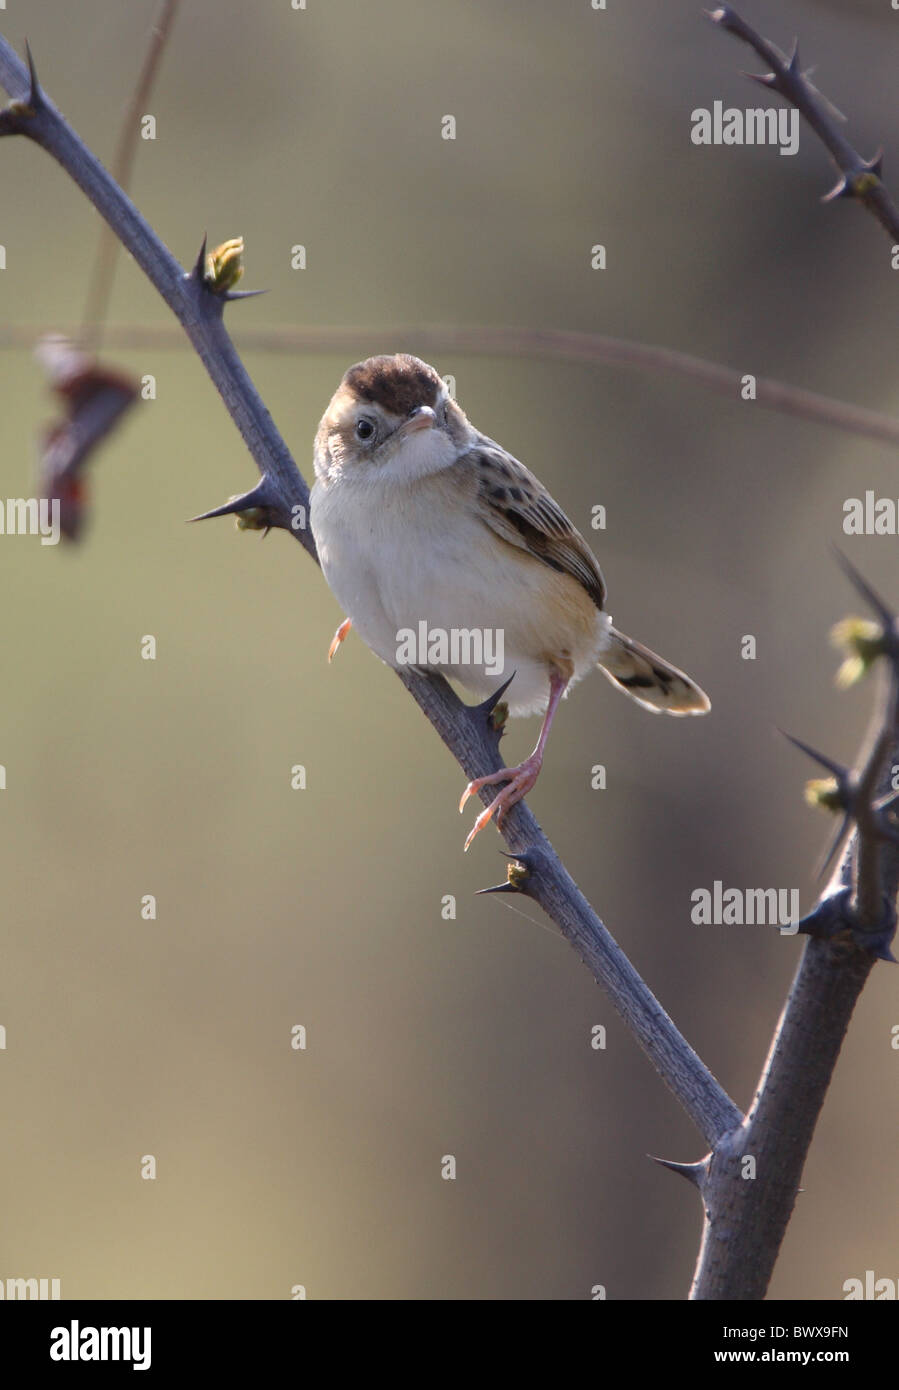 Fan-tailed Warbler (Cisticola juncidis tinnabulans) adult, perched on thorny twig, Beidaihe, Hebei, China, may - Stock Image